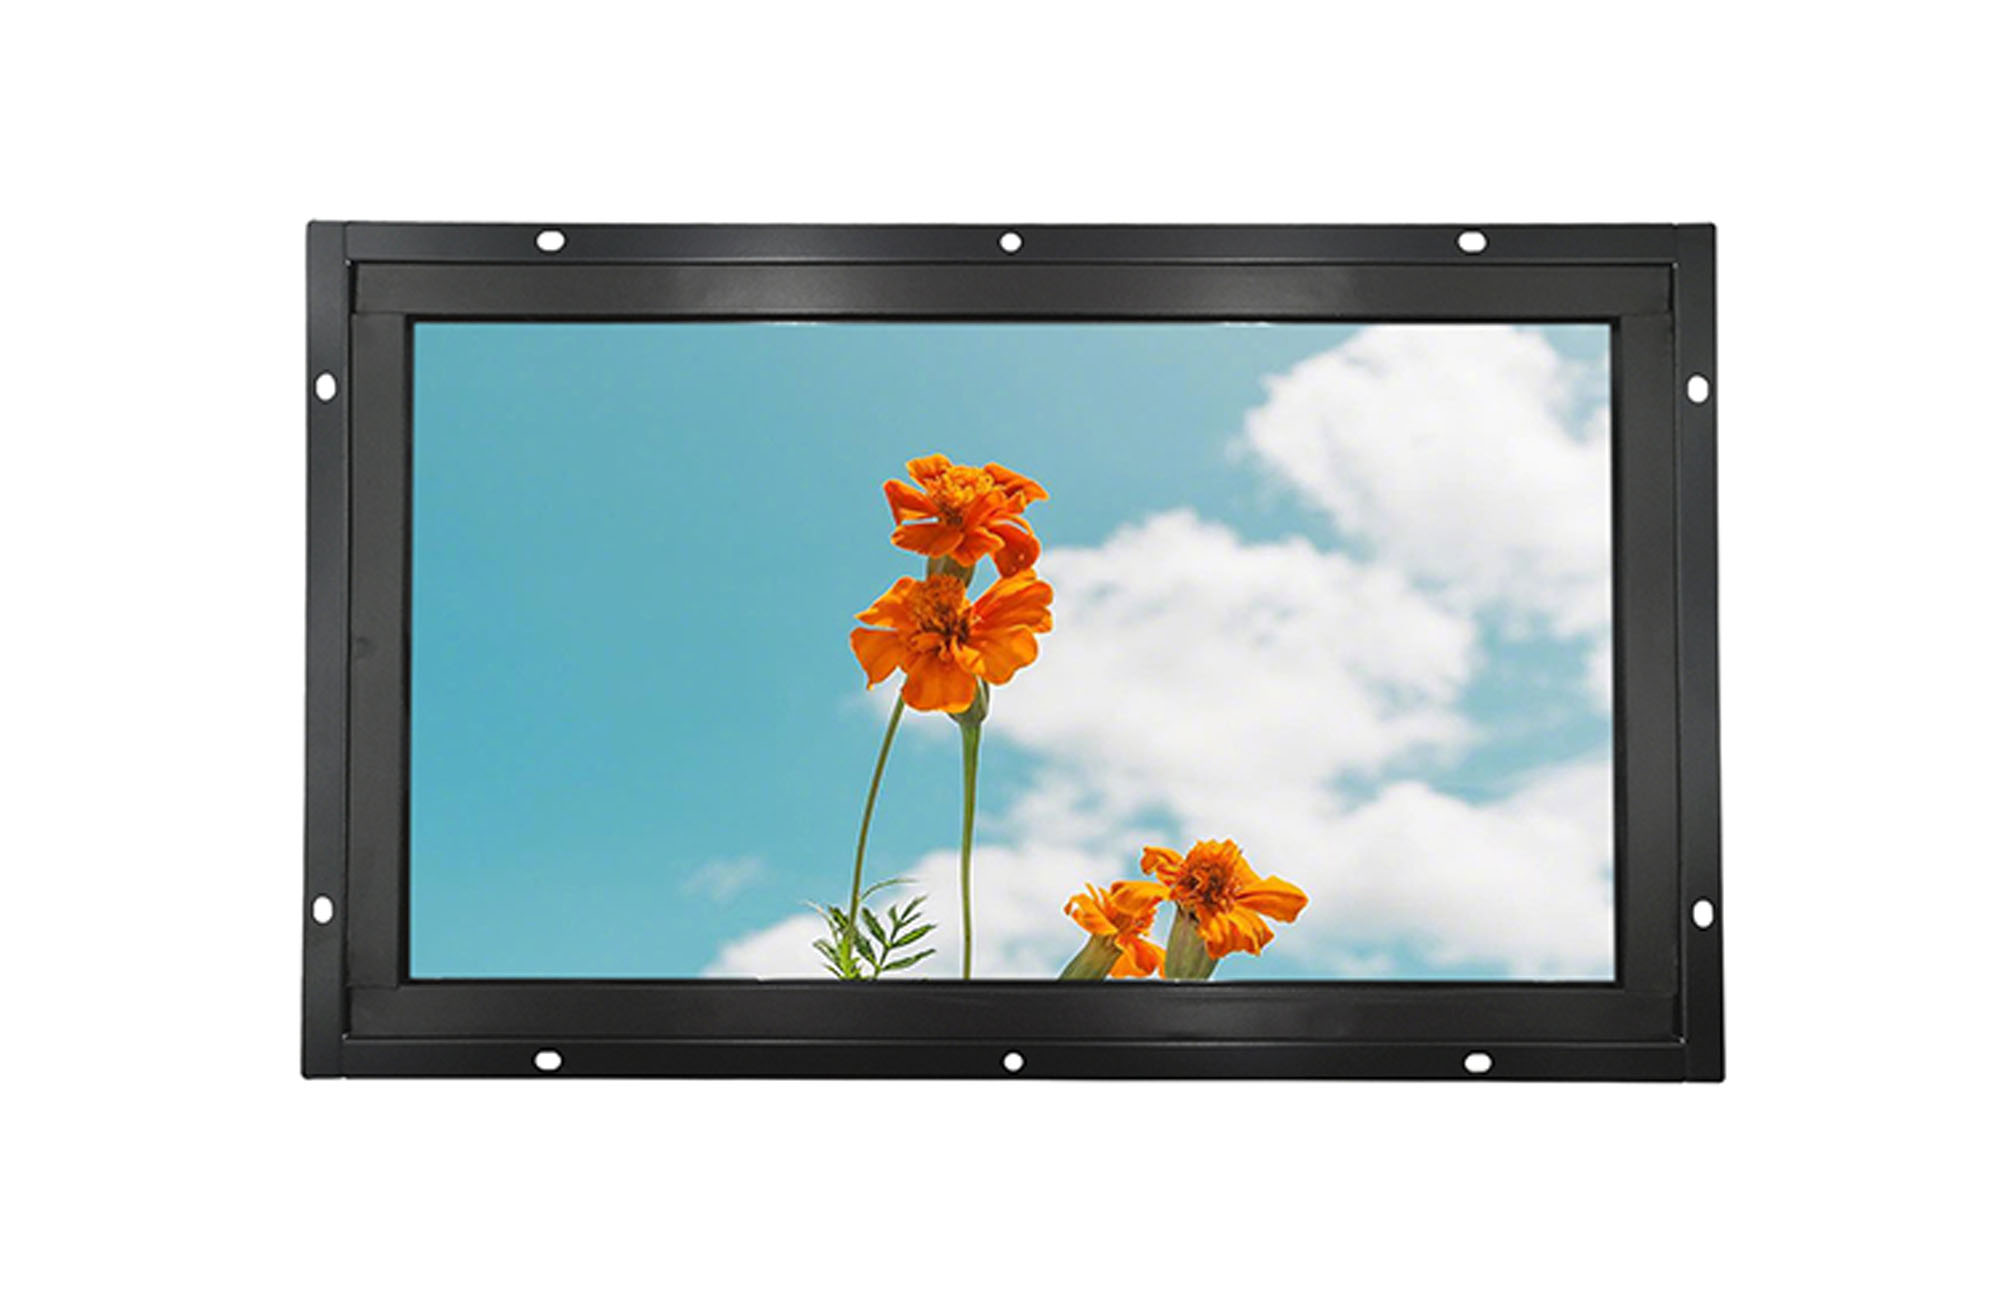 21.5 Inch Android All -in -one Panel PC